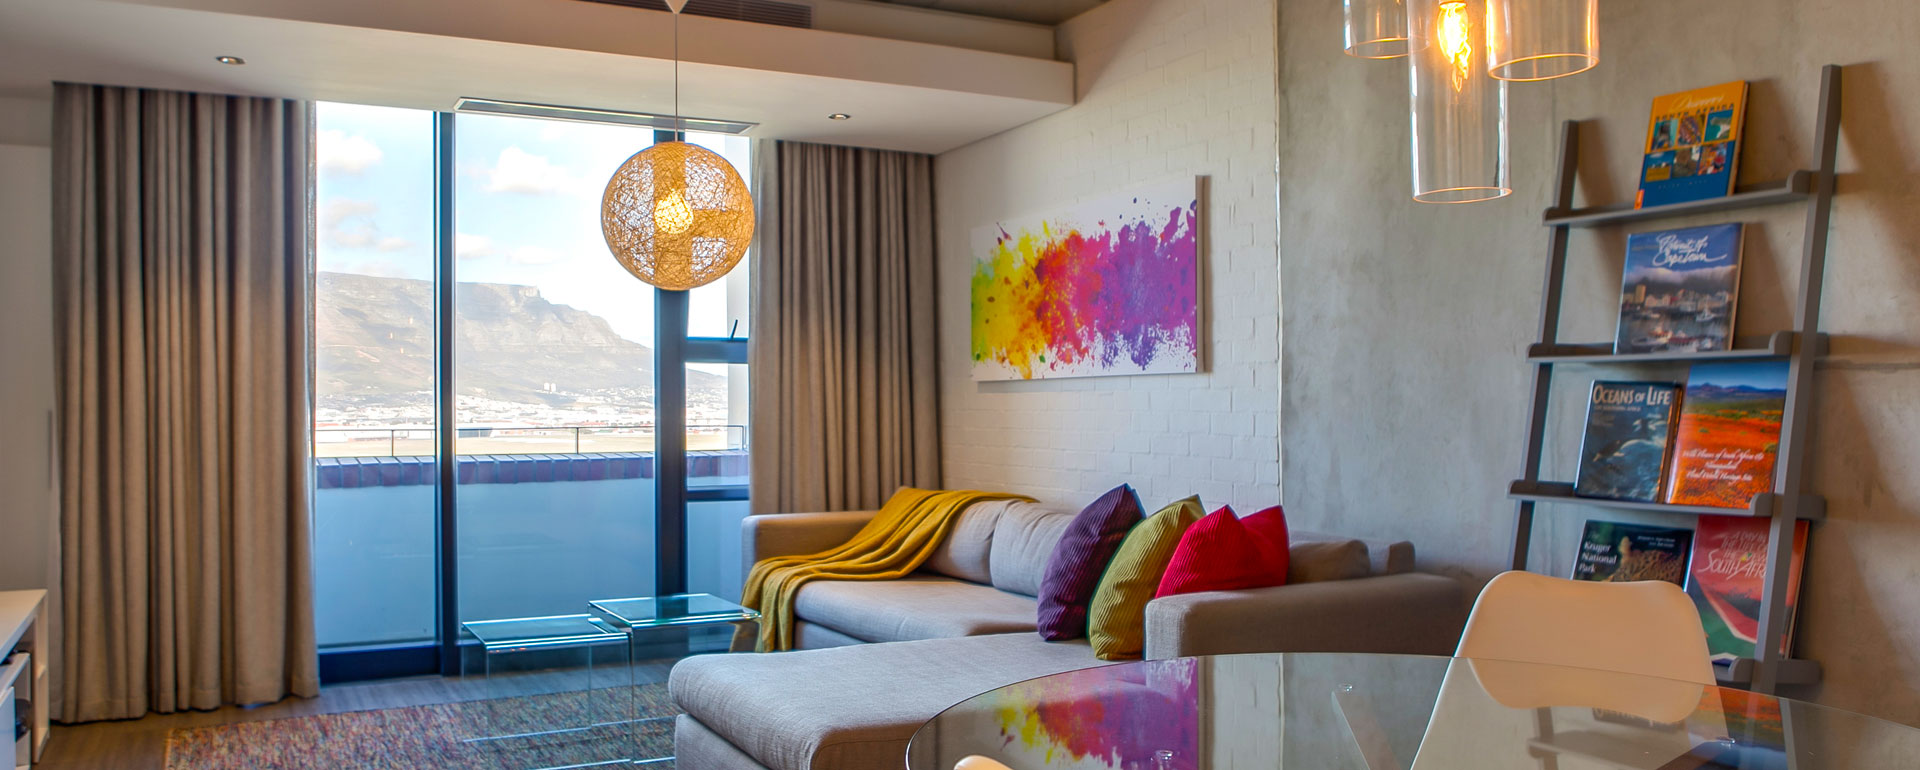 Bespoke interior design decorating services window treatments such as curtains or blinds